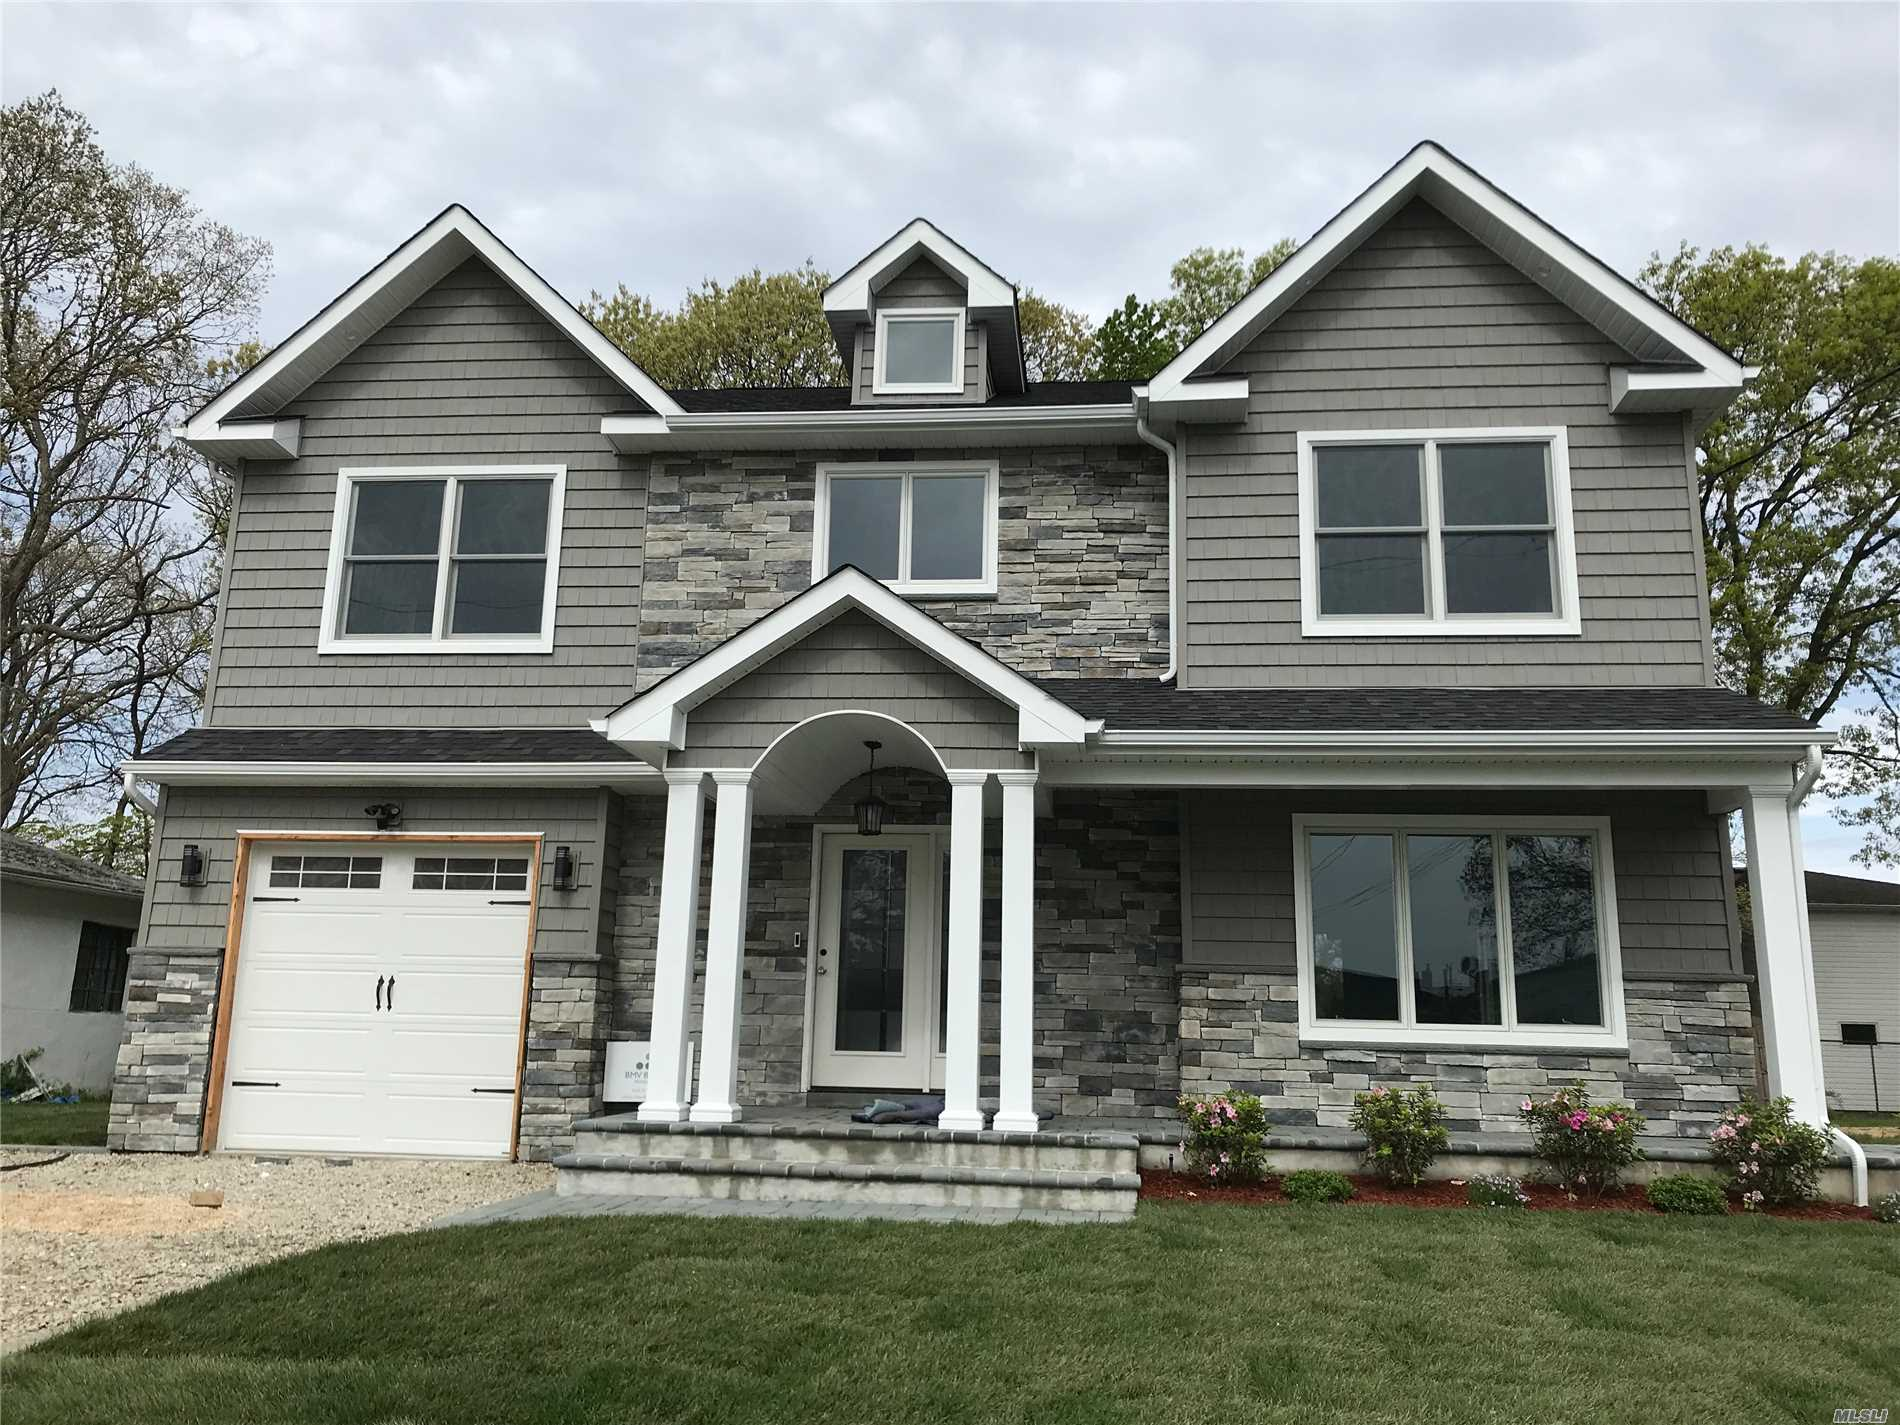 70 Park Ln - Massapequa Park, New York